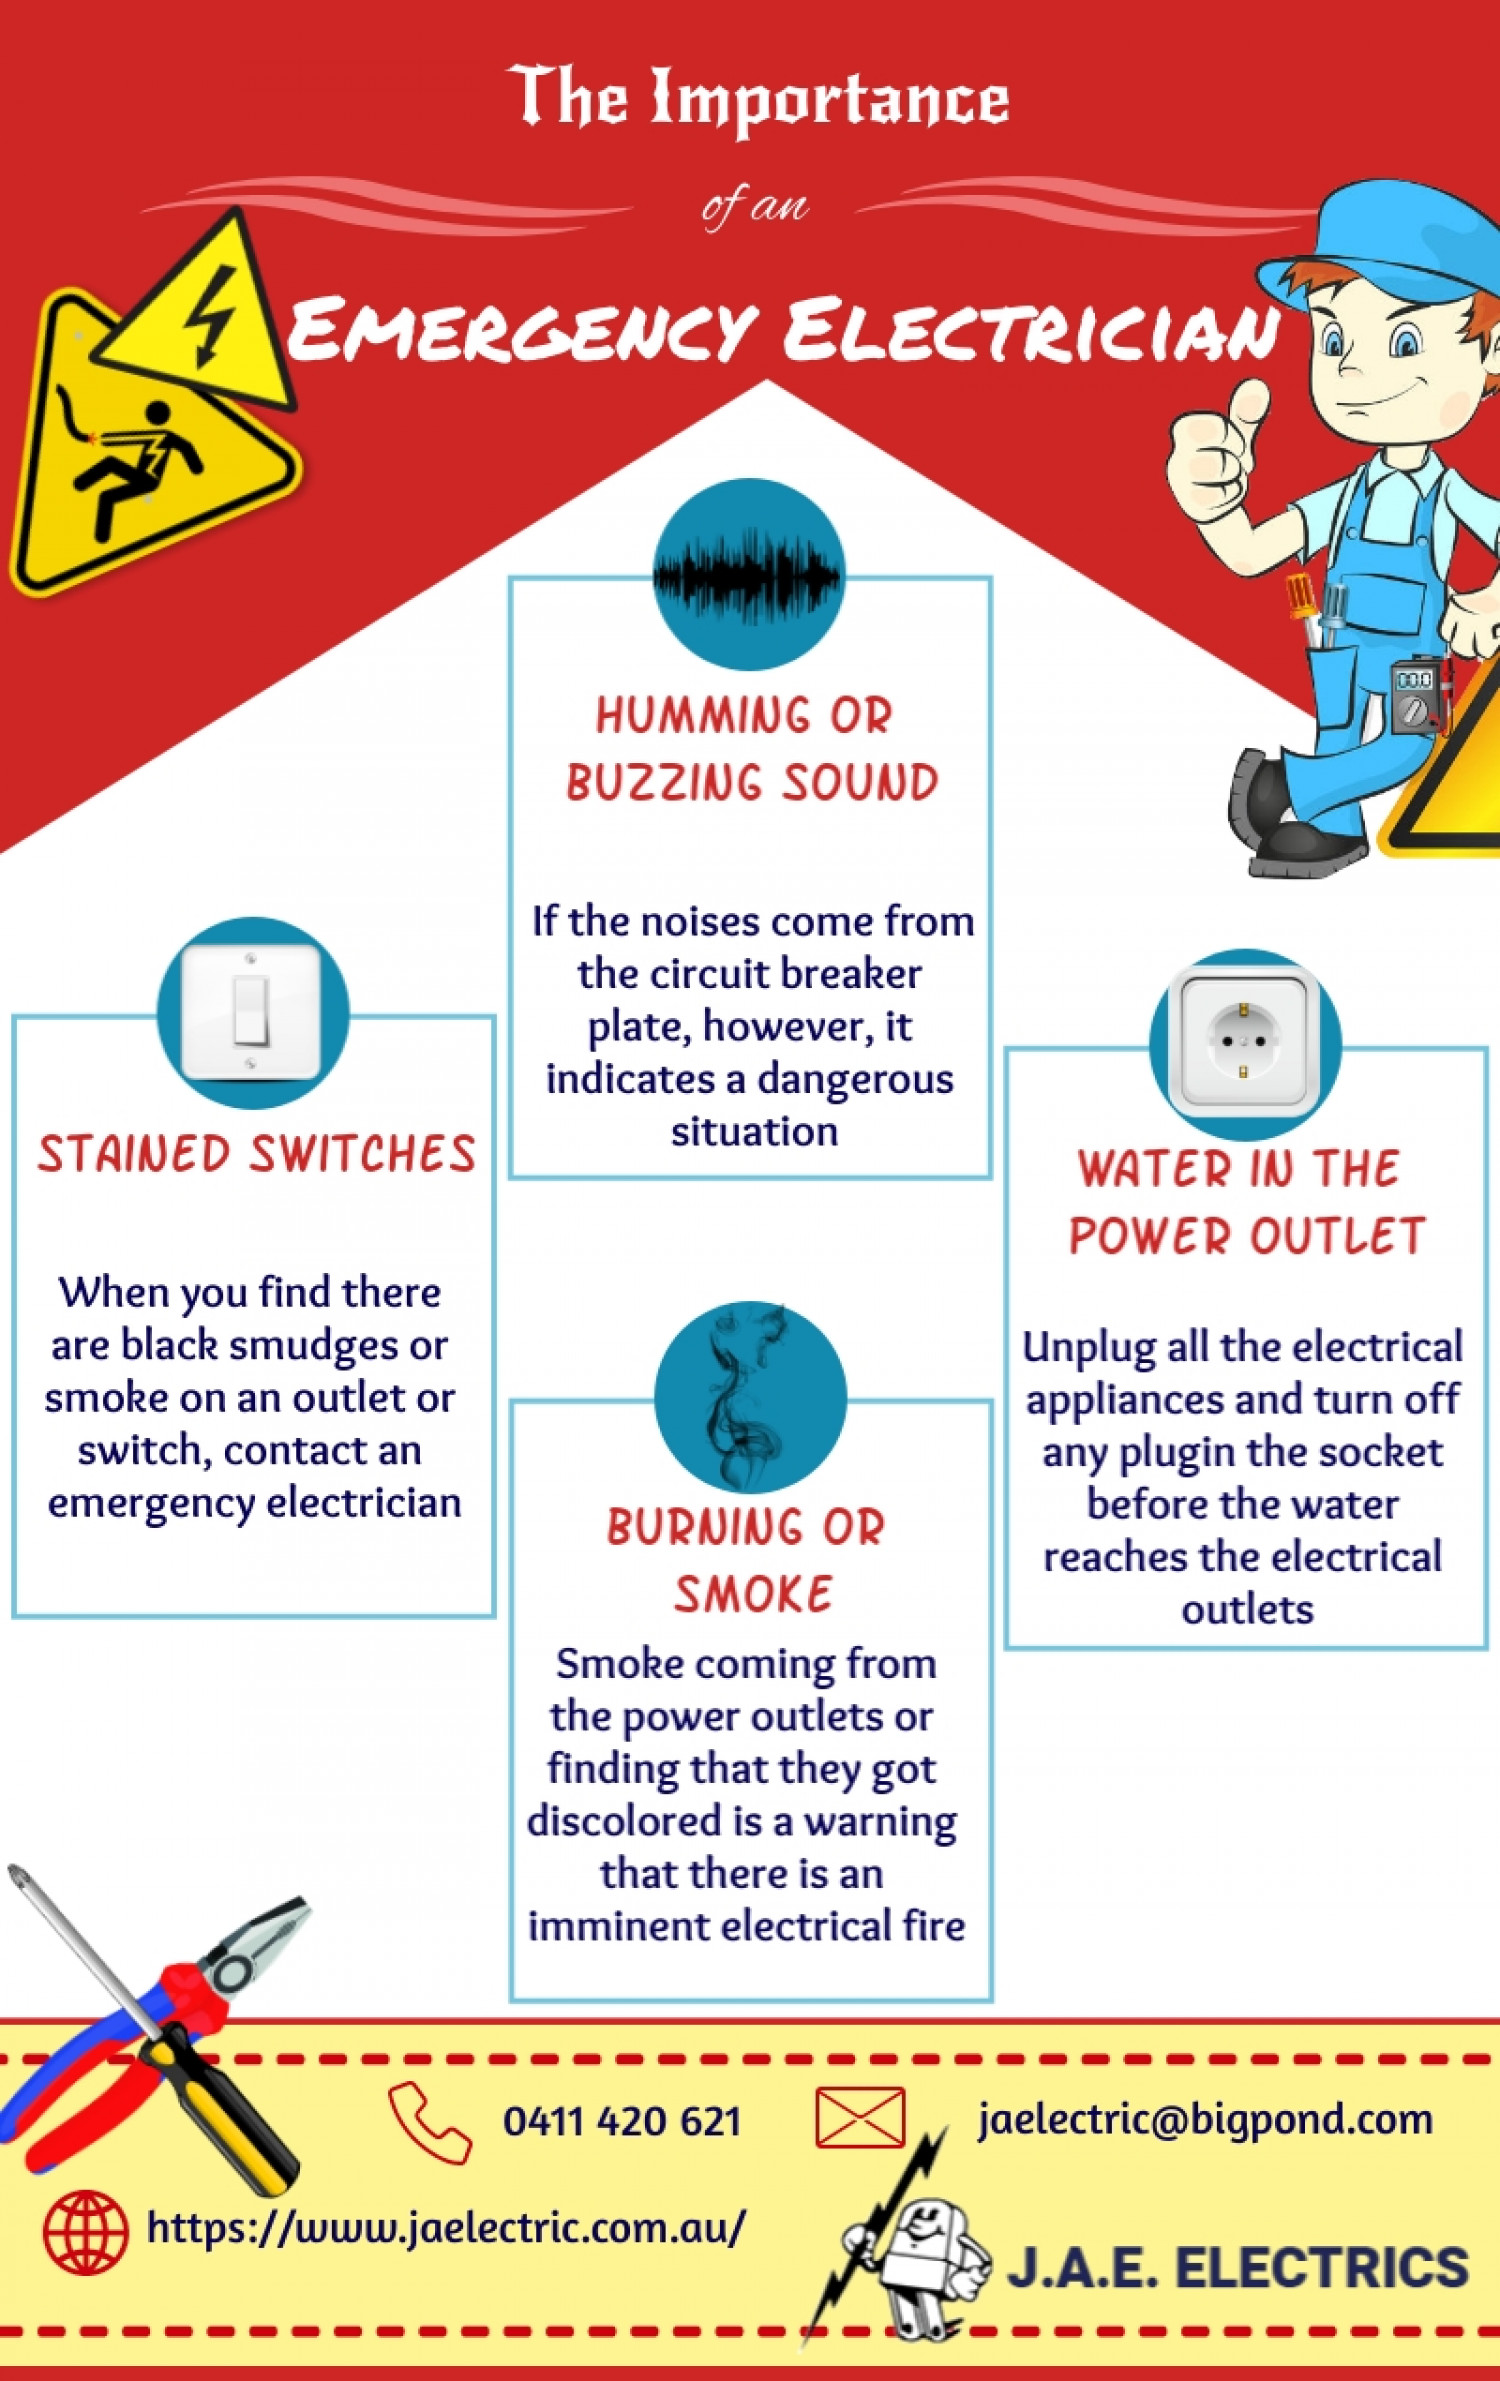 The Importance of an Emergency Electrician Infographic